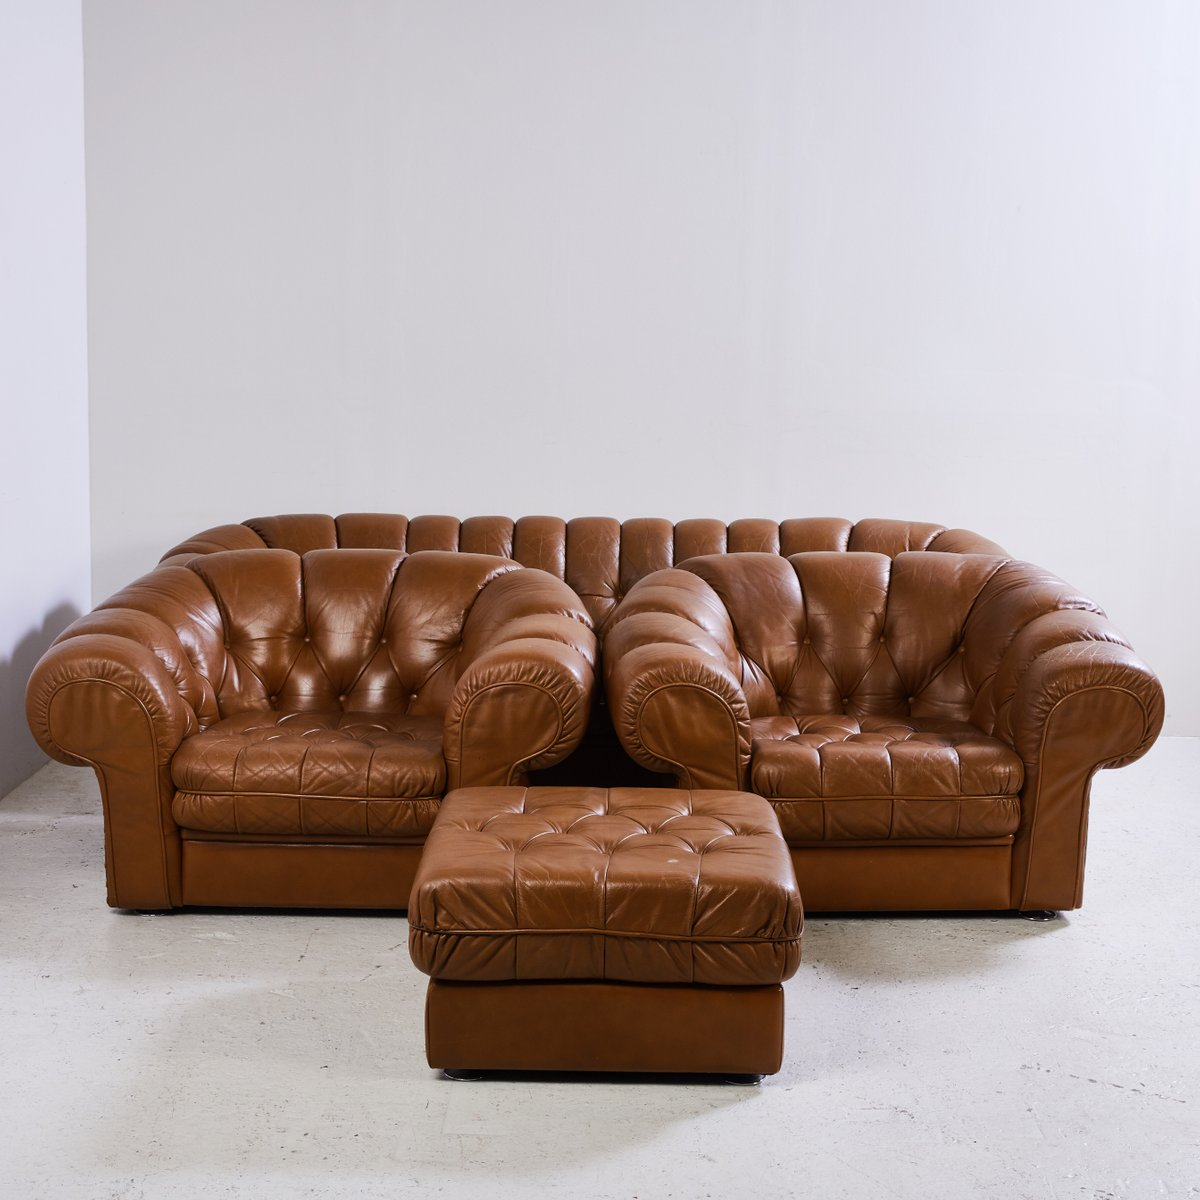 algarve leather sofa and loveseat set benson the brick chesterfield 1970s for sale at pamono